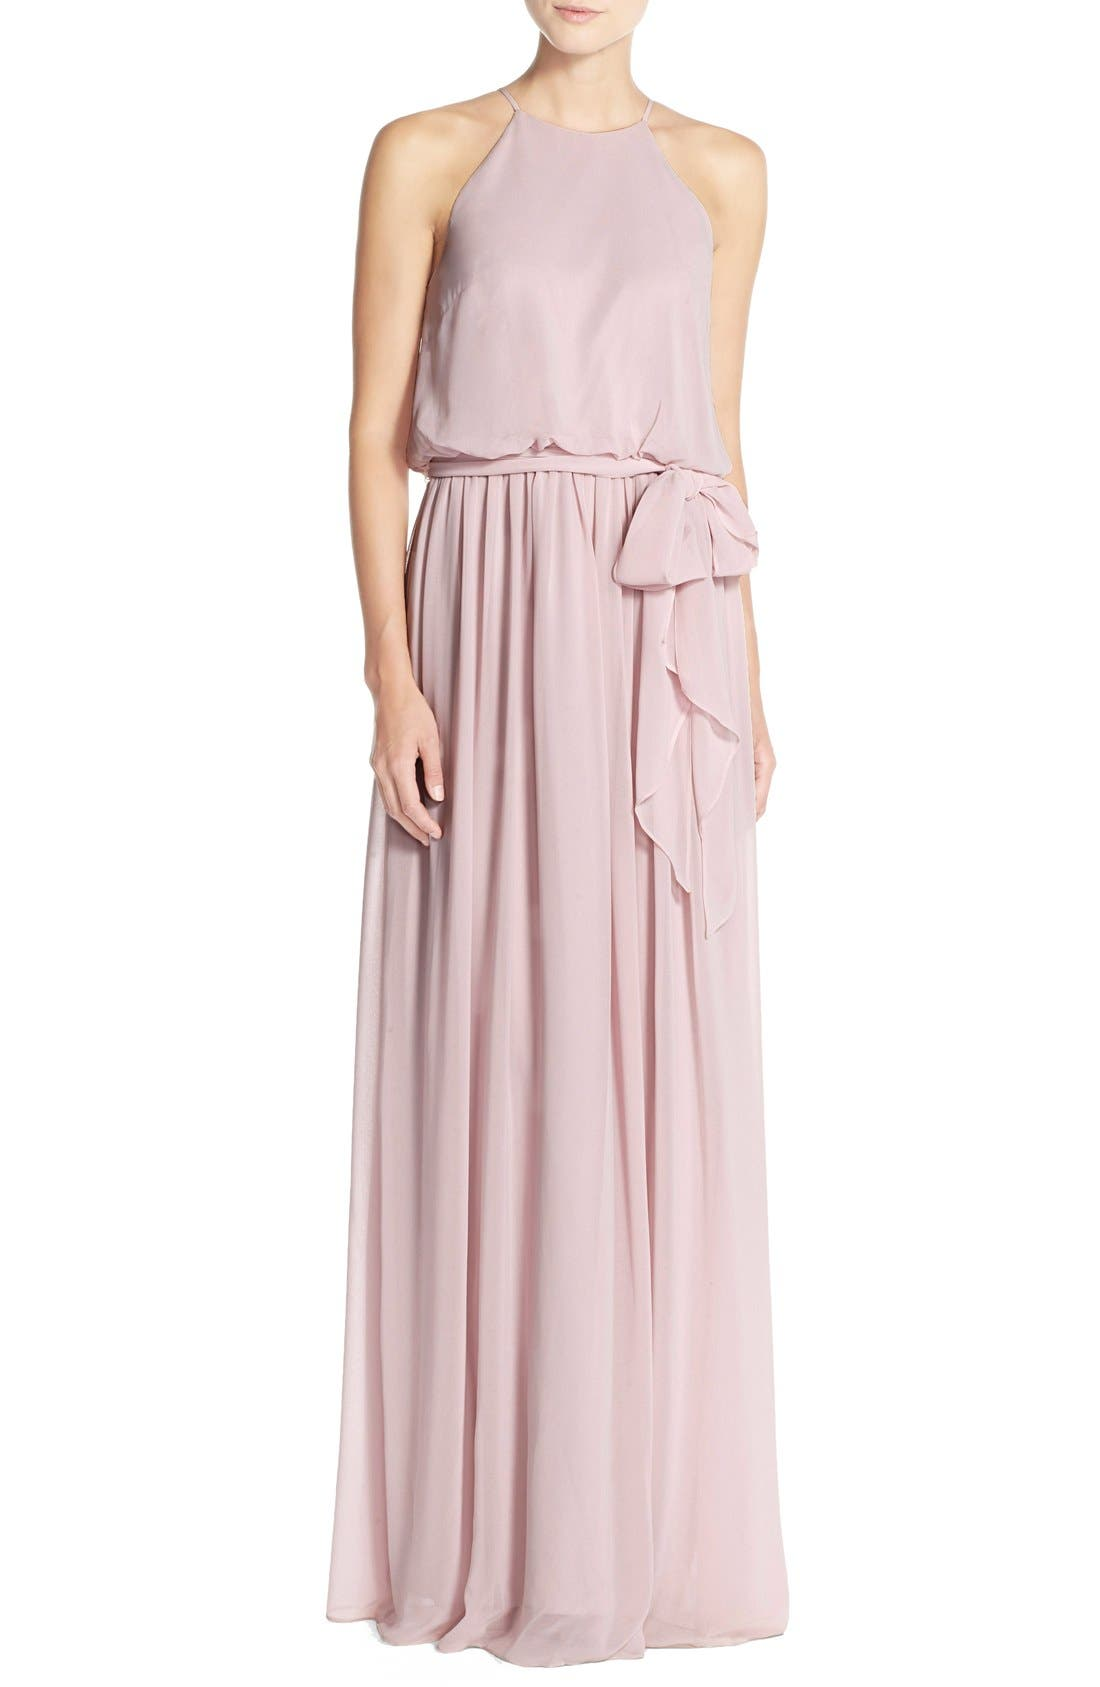 Alternate Image 1 Selected - Donna Morgan 'Alana' Chiffon Halter Style Gown